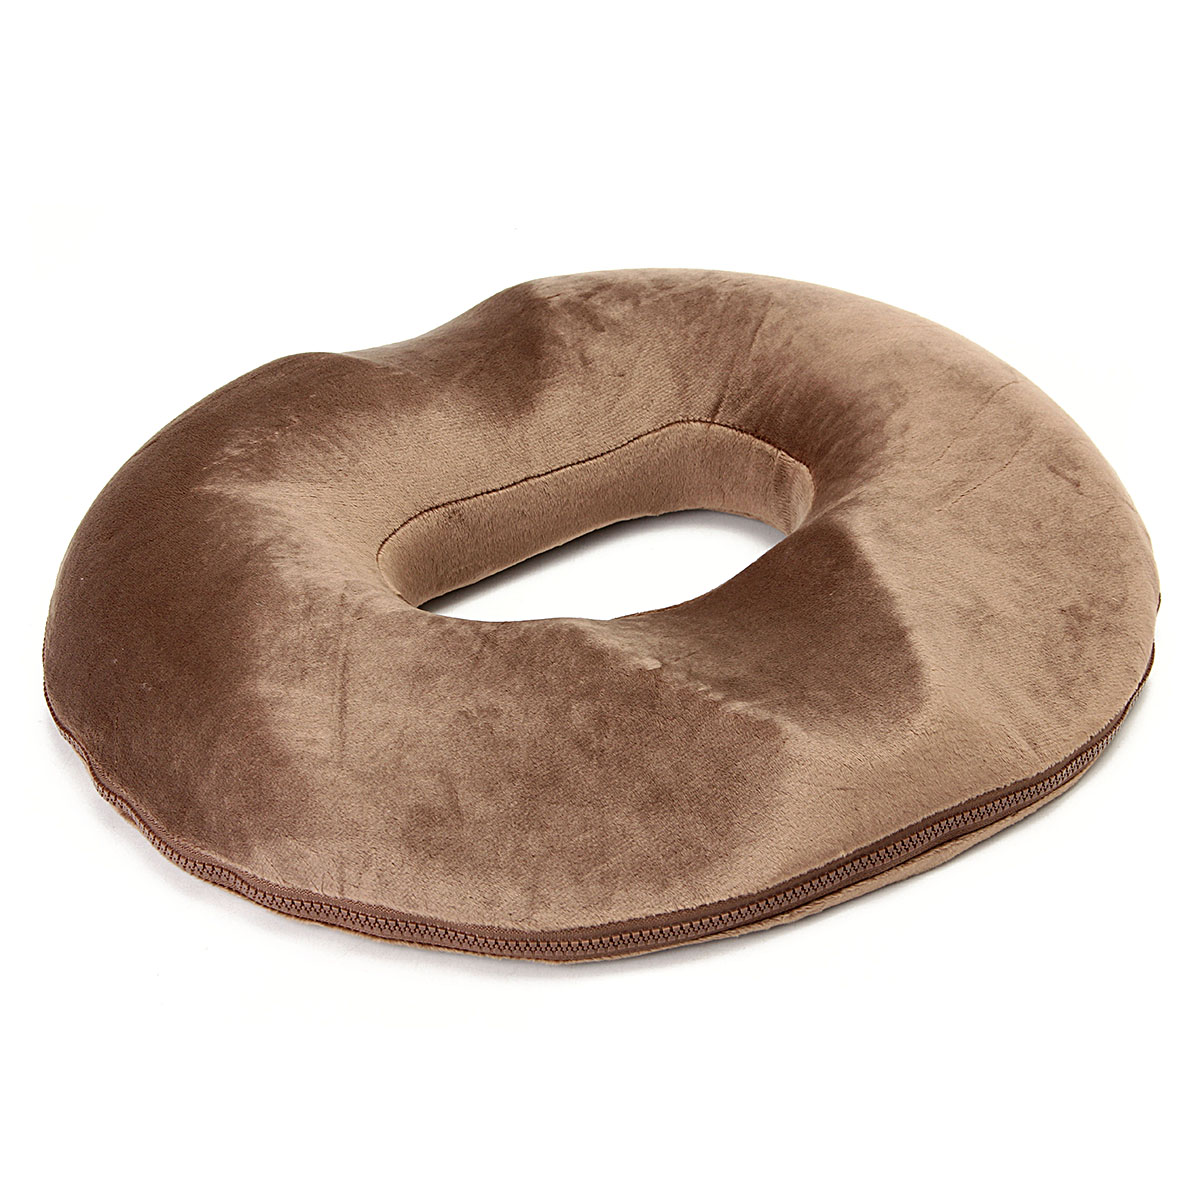 Grtsunsea 16''x17'' Memory Cotton Ring Donut Memory Foam Seat Cushion for Office Chair Car Seat